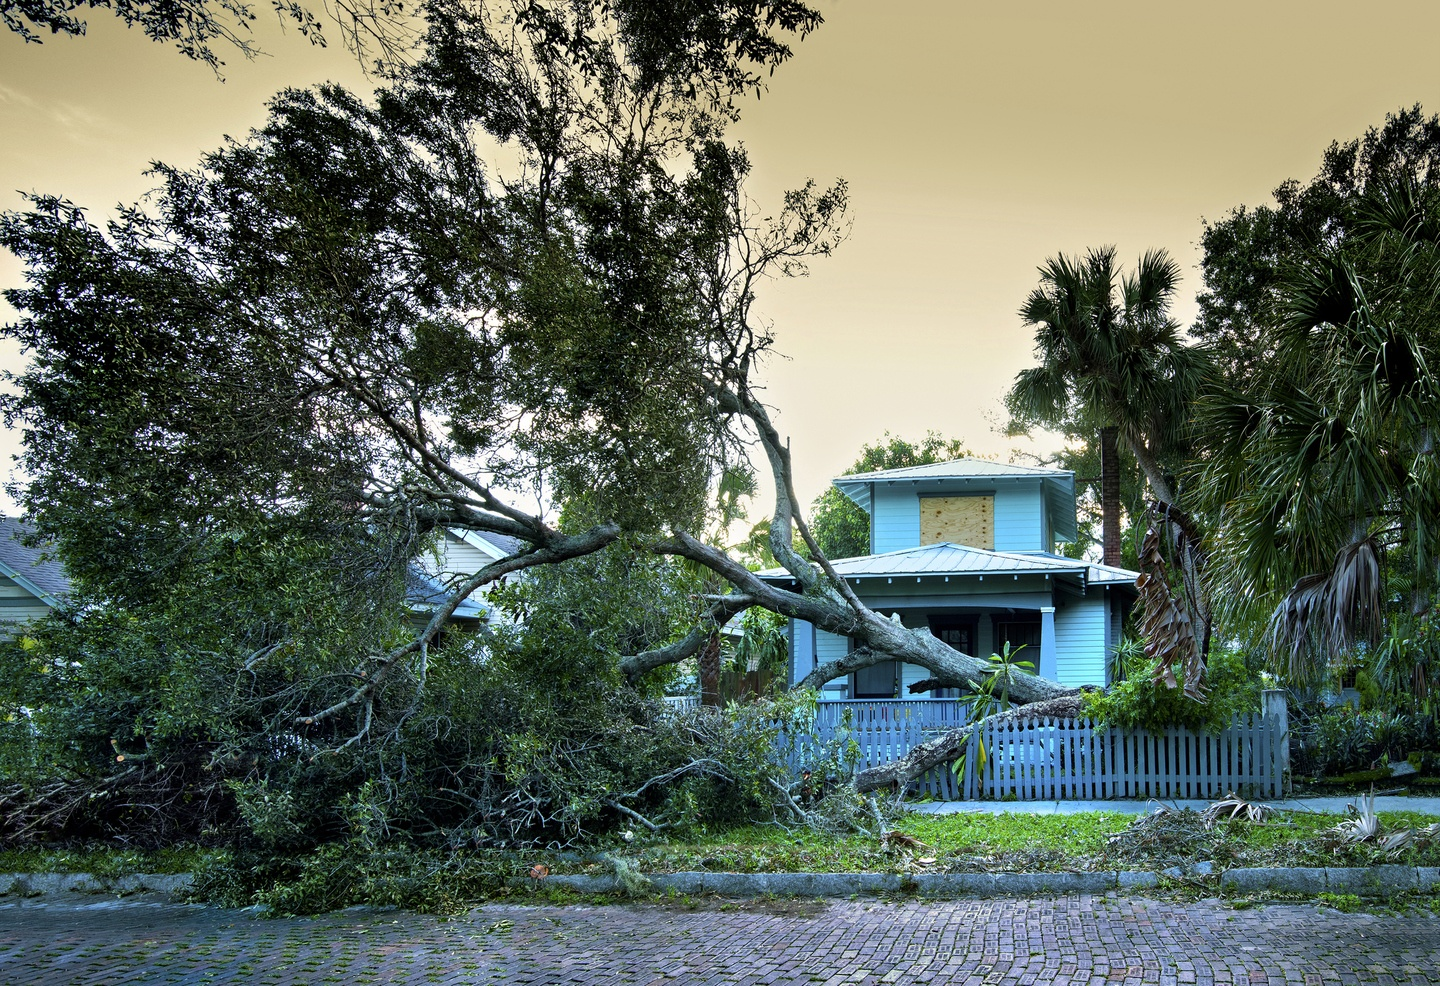 Are More Hurricanes Driving Up the Price of Home Insurance?